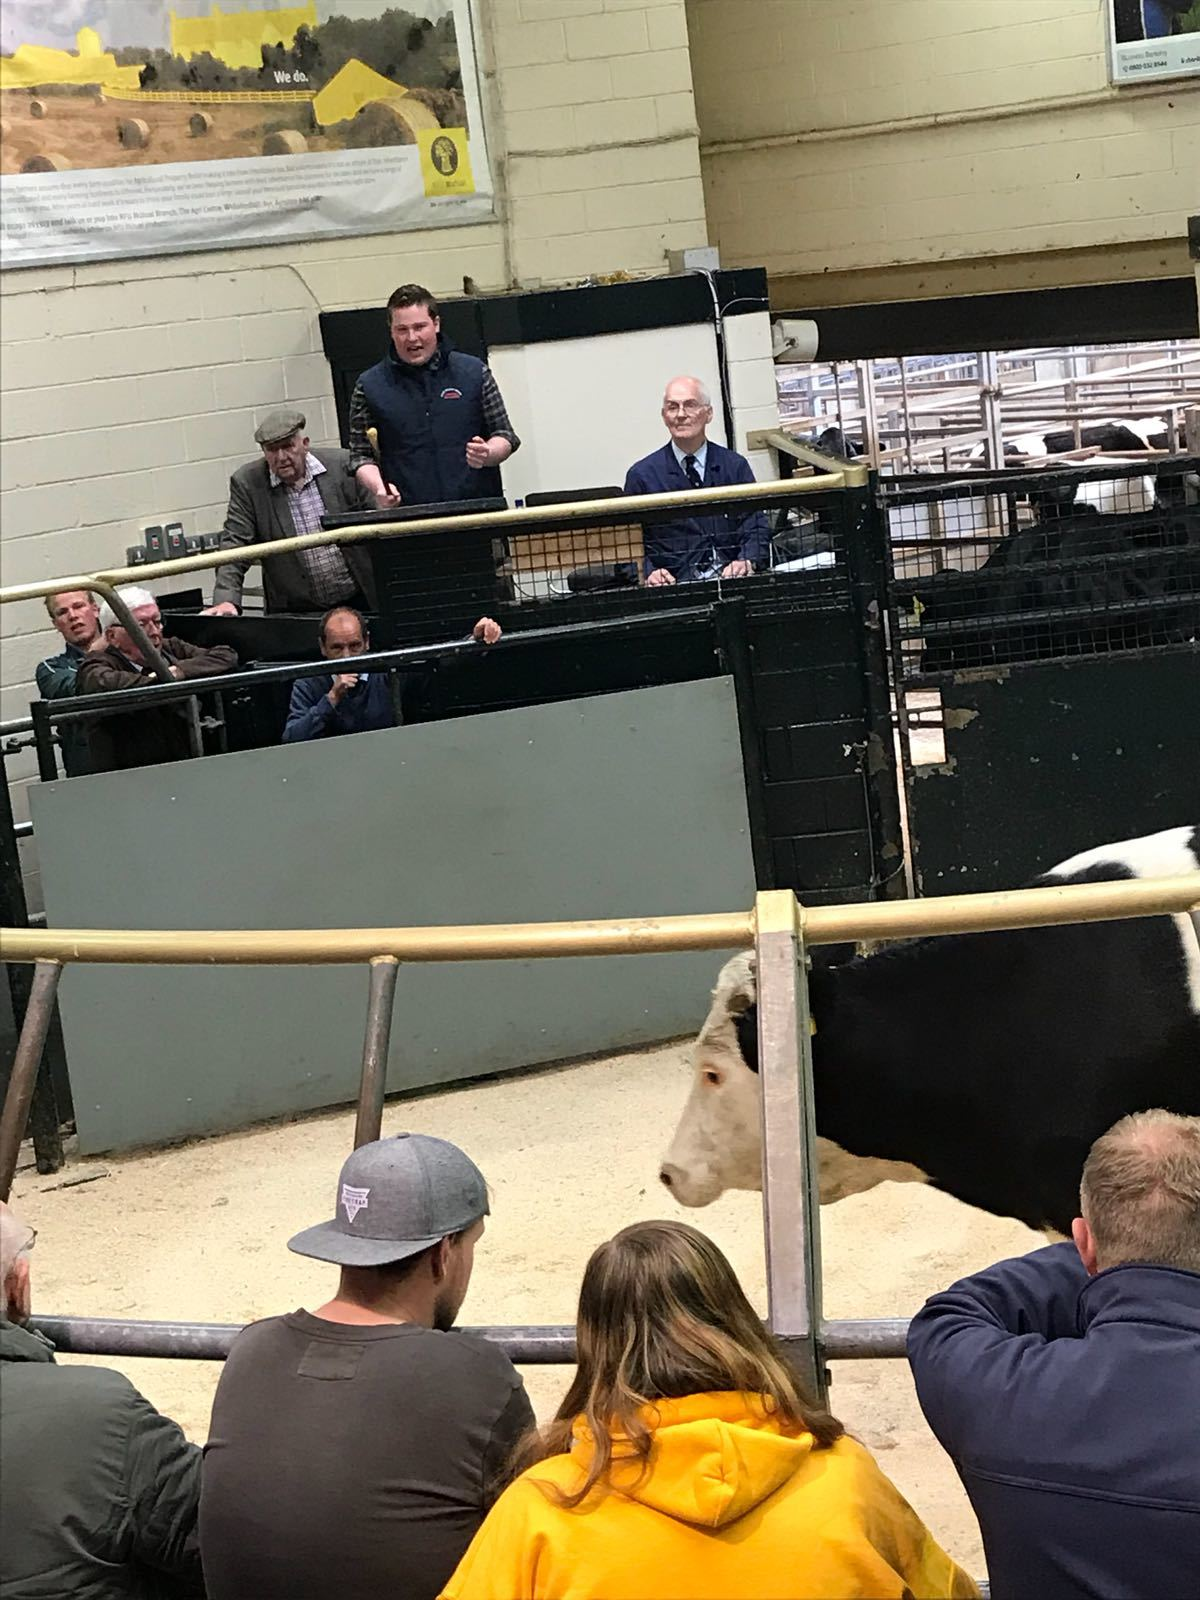 Prime heifers sell to top of 240p/kg at Ayr - HeraldScotland